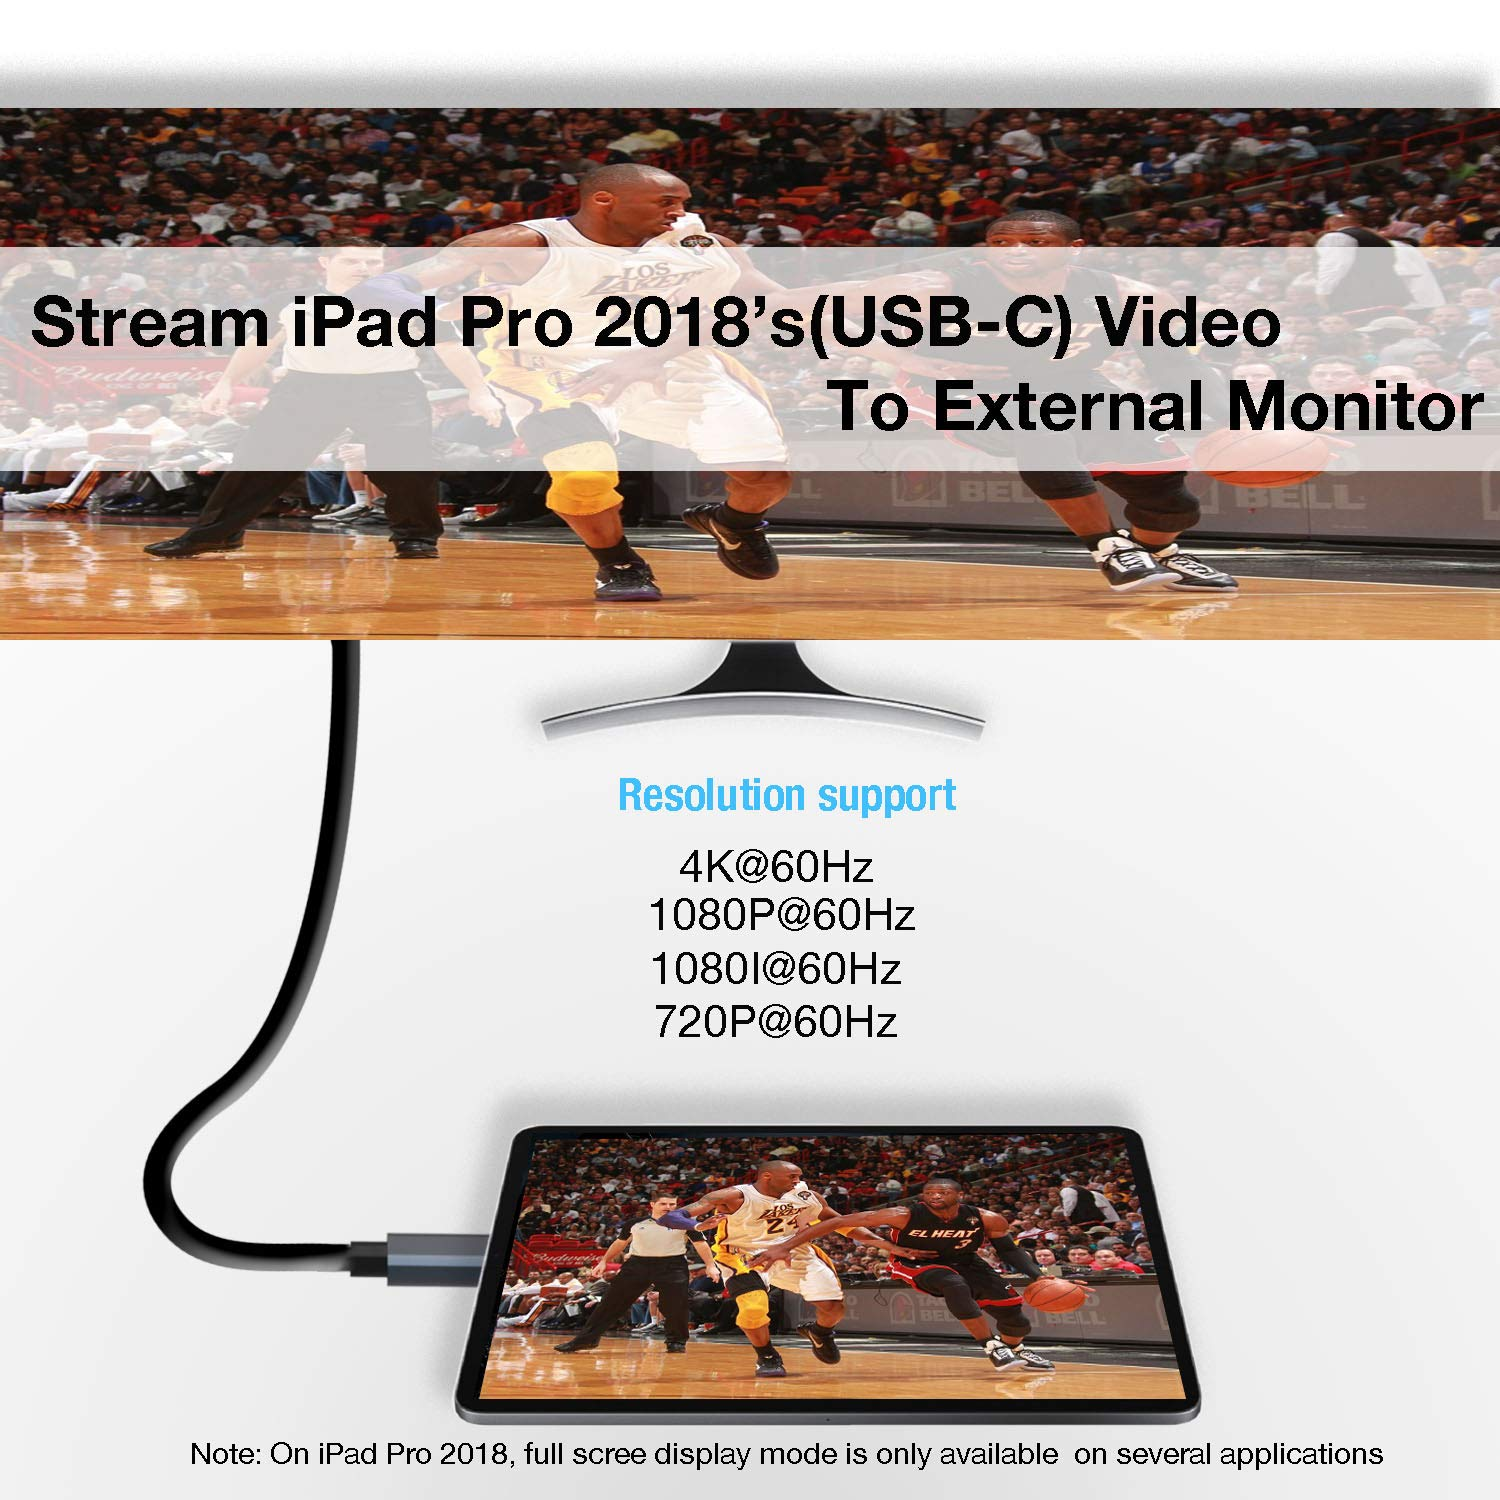 INNOMAX USB-C/Thunderbolt 3 to High Resolution (4K@60Hz,6.6 FT/2M )HDMI Video Cable for MacBook Pro 2018/2017/2016, iPad Pro/MacBook Air 2018,Galaxy S9/S8, Surface Book 2,Other USB Type-C Devices-Gray